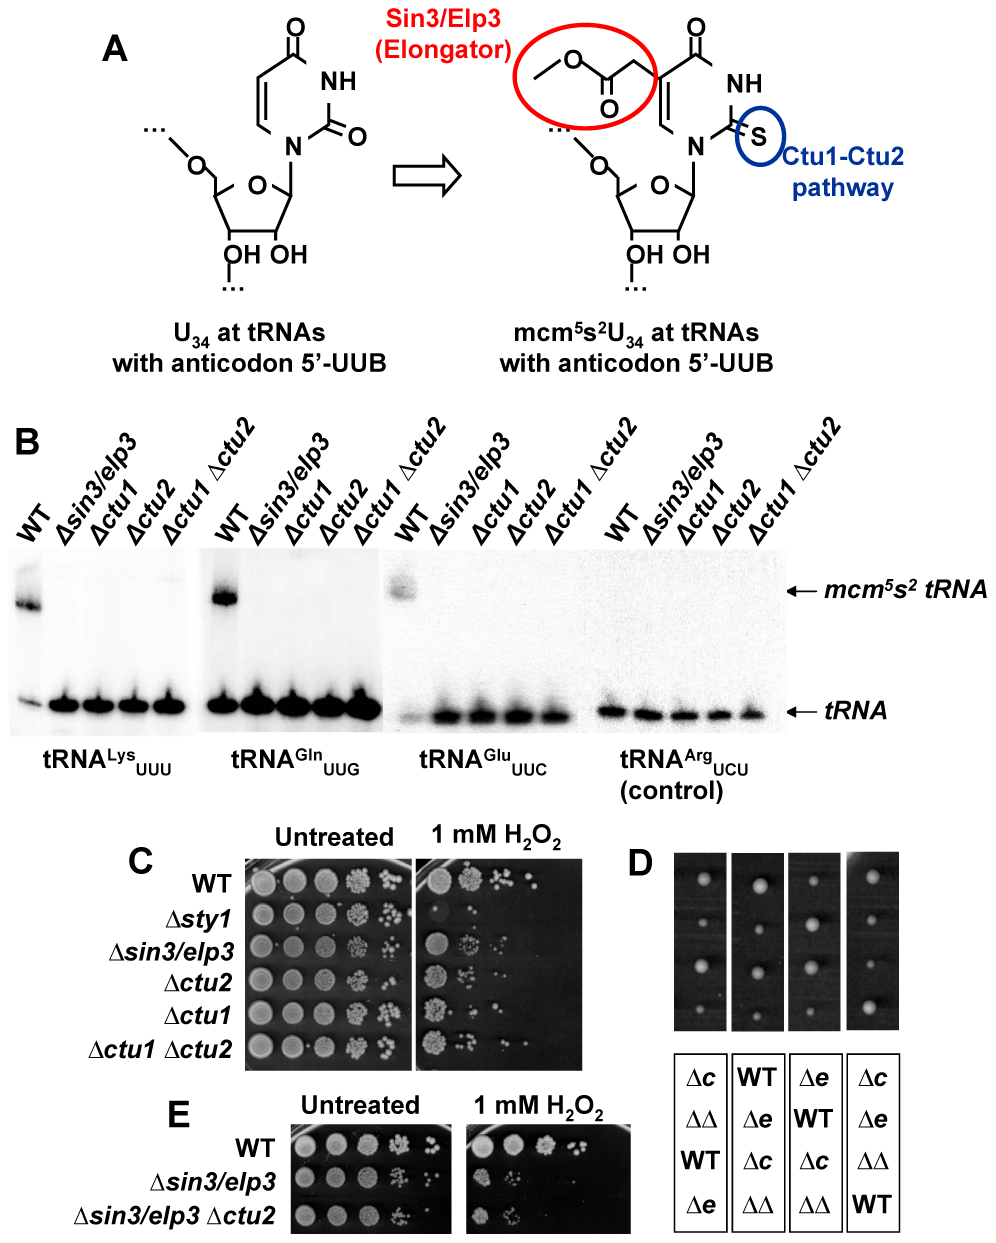 Sin3/Elp3 is required for modification of uridine-34 (U<sub>34</sub>) at the anticodon of some cytoplasmic tRNAs.